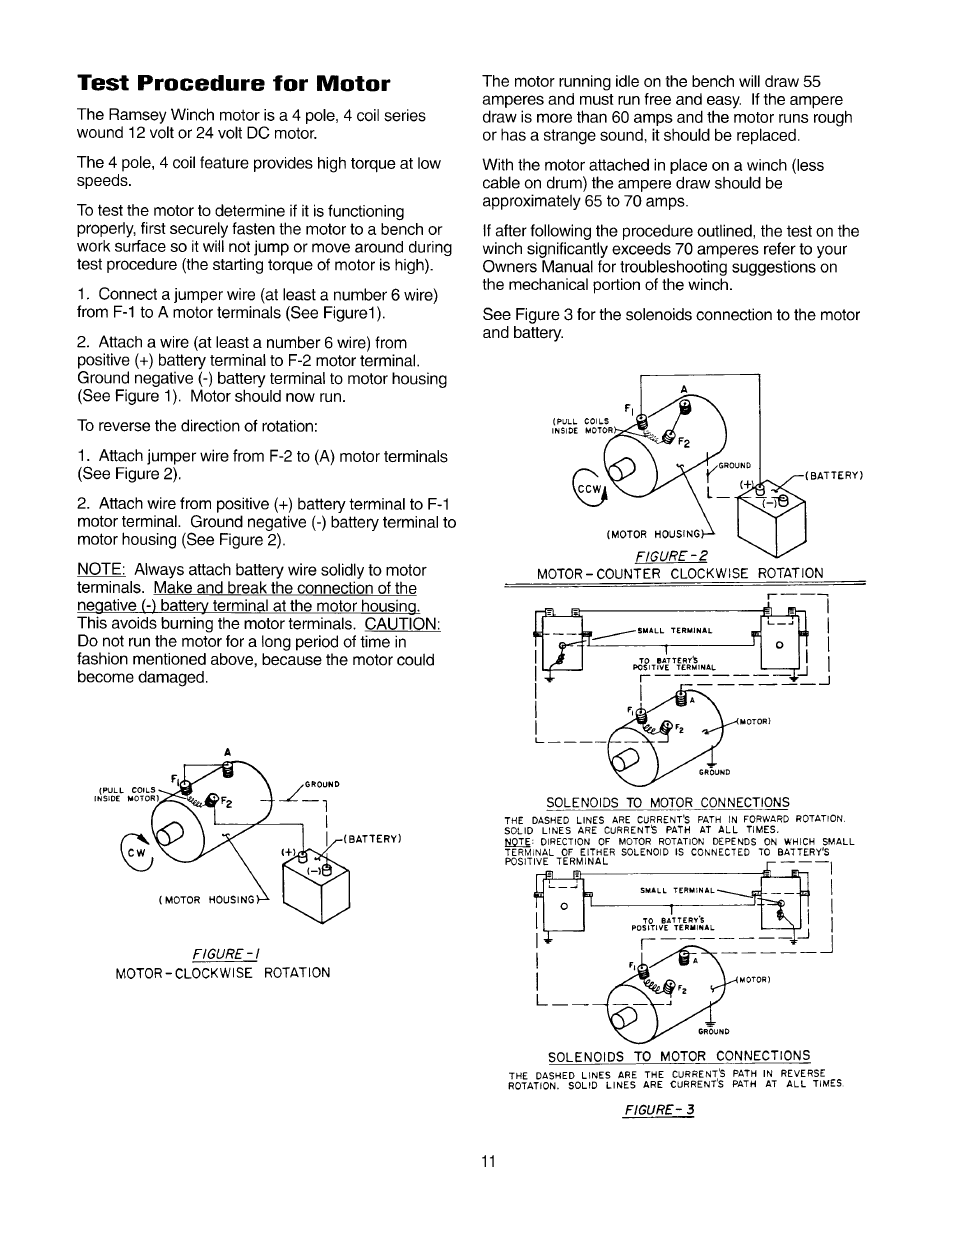 ramsey winch re 8000_10000_12000t page11?resize\\\\\=665%2C861 post winch solenoid wiring diagram 6 amc solenoid wiring diagram continuous duty solenoid wiring diagram at gsmportal.co